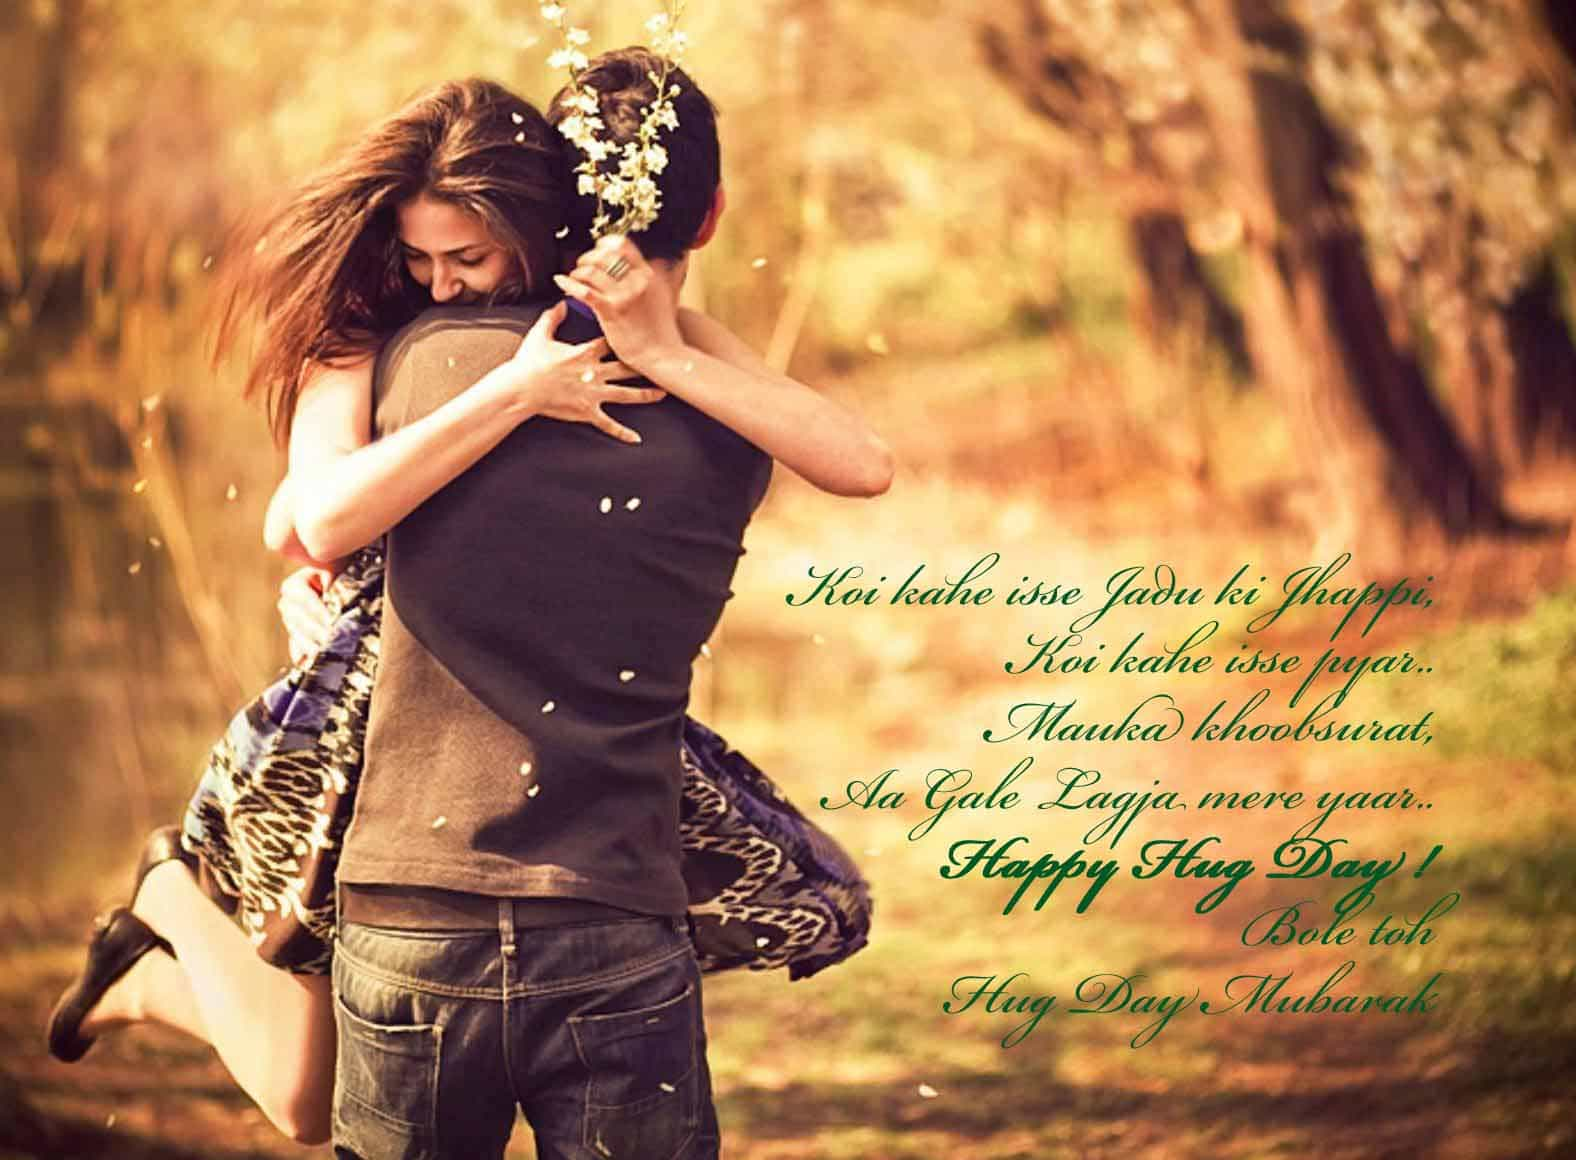 Hug Day 2016 – 6th day of Valentine week : Best quotes, wishes, picture messages